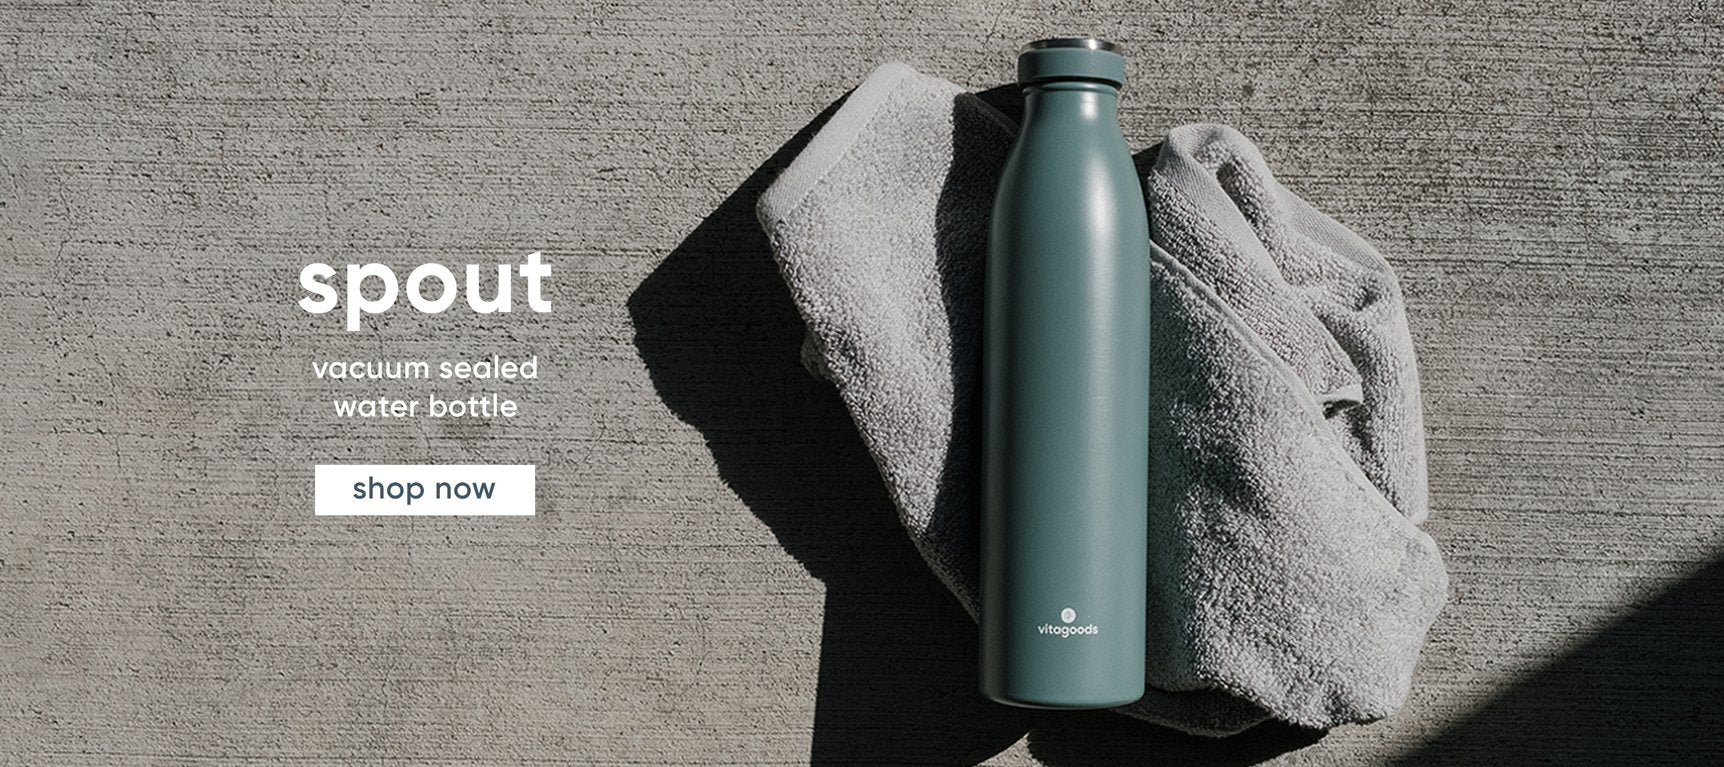 spout vacuum sealed water bottle